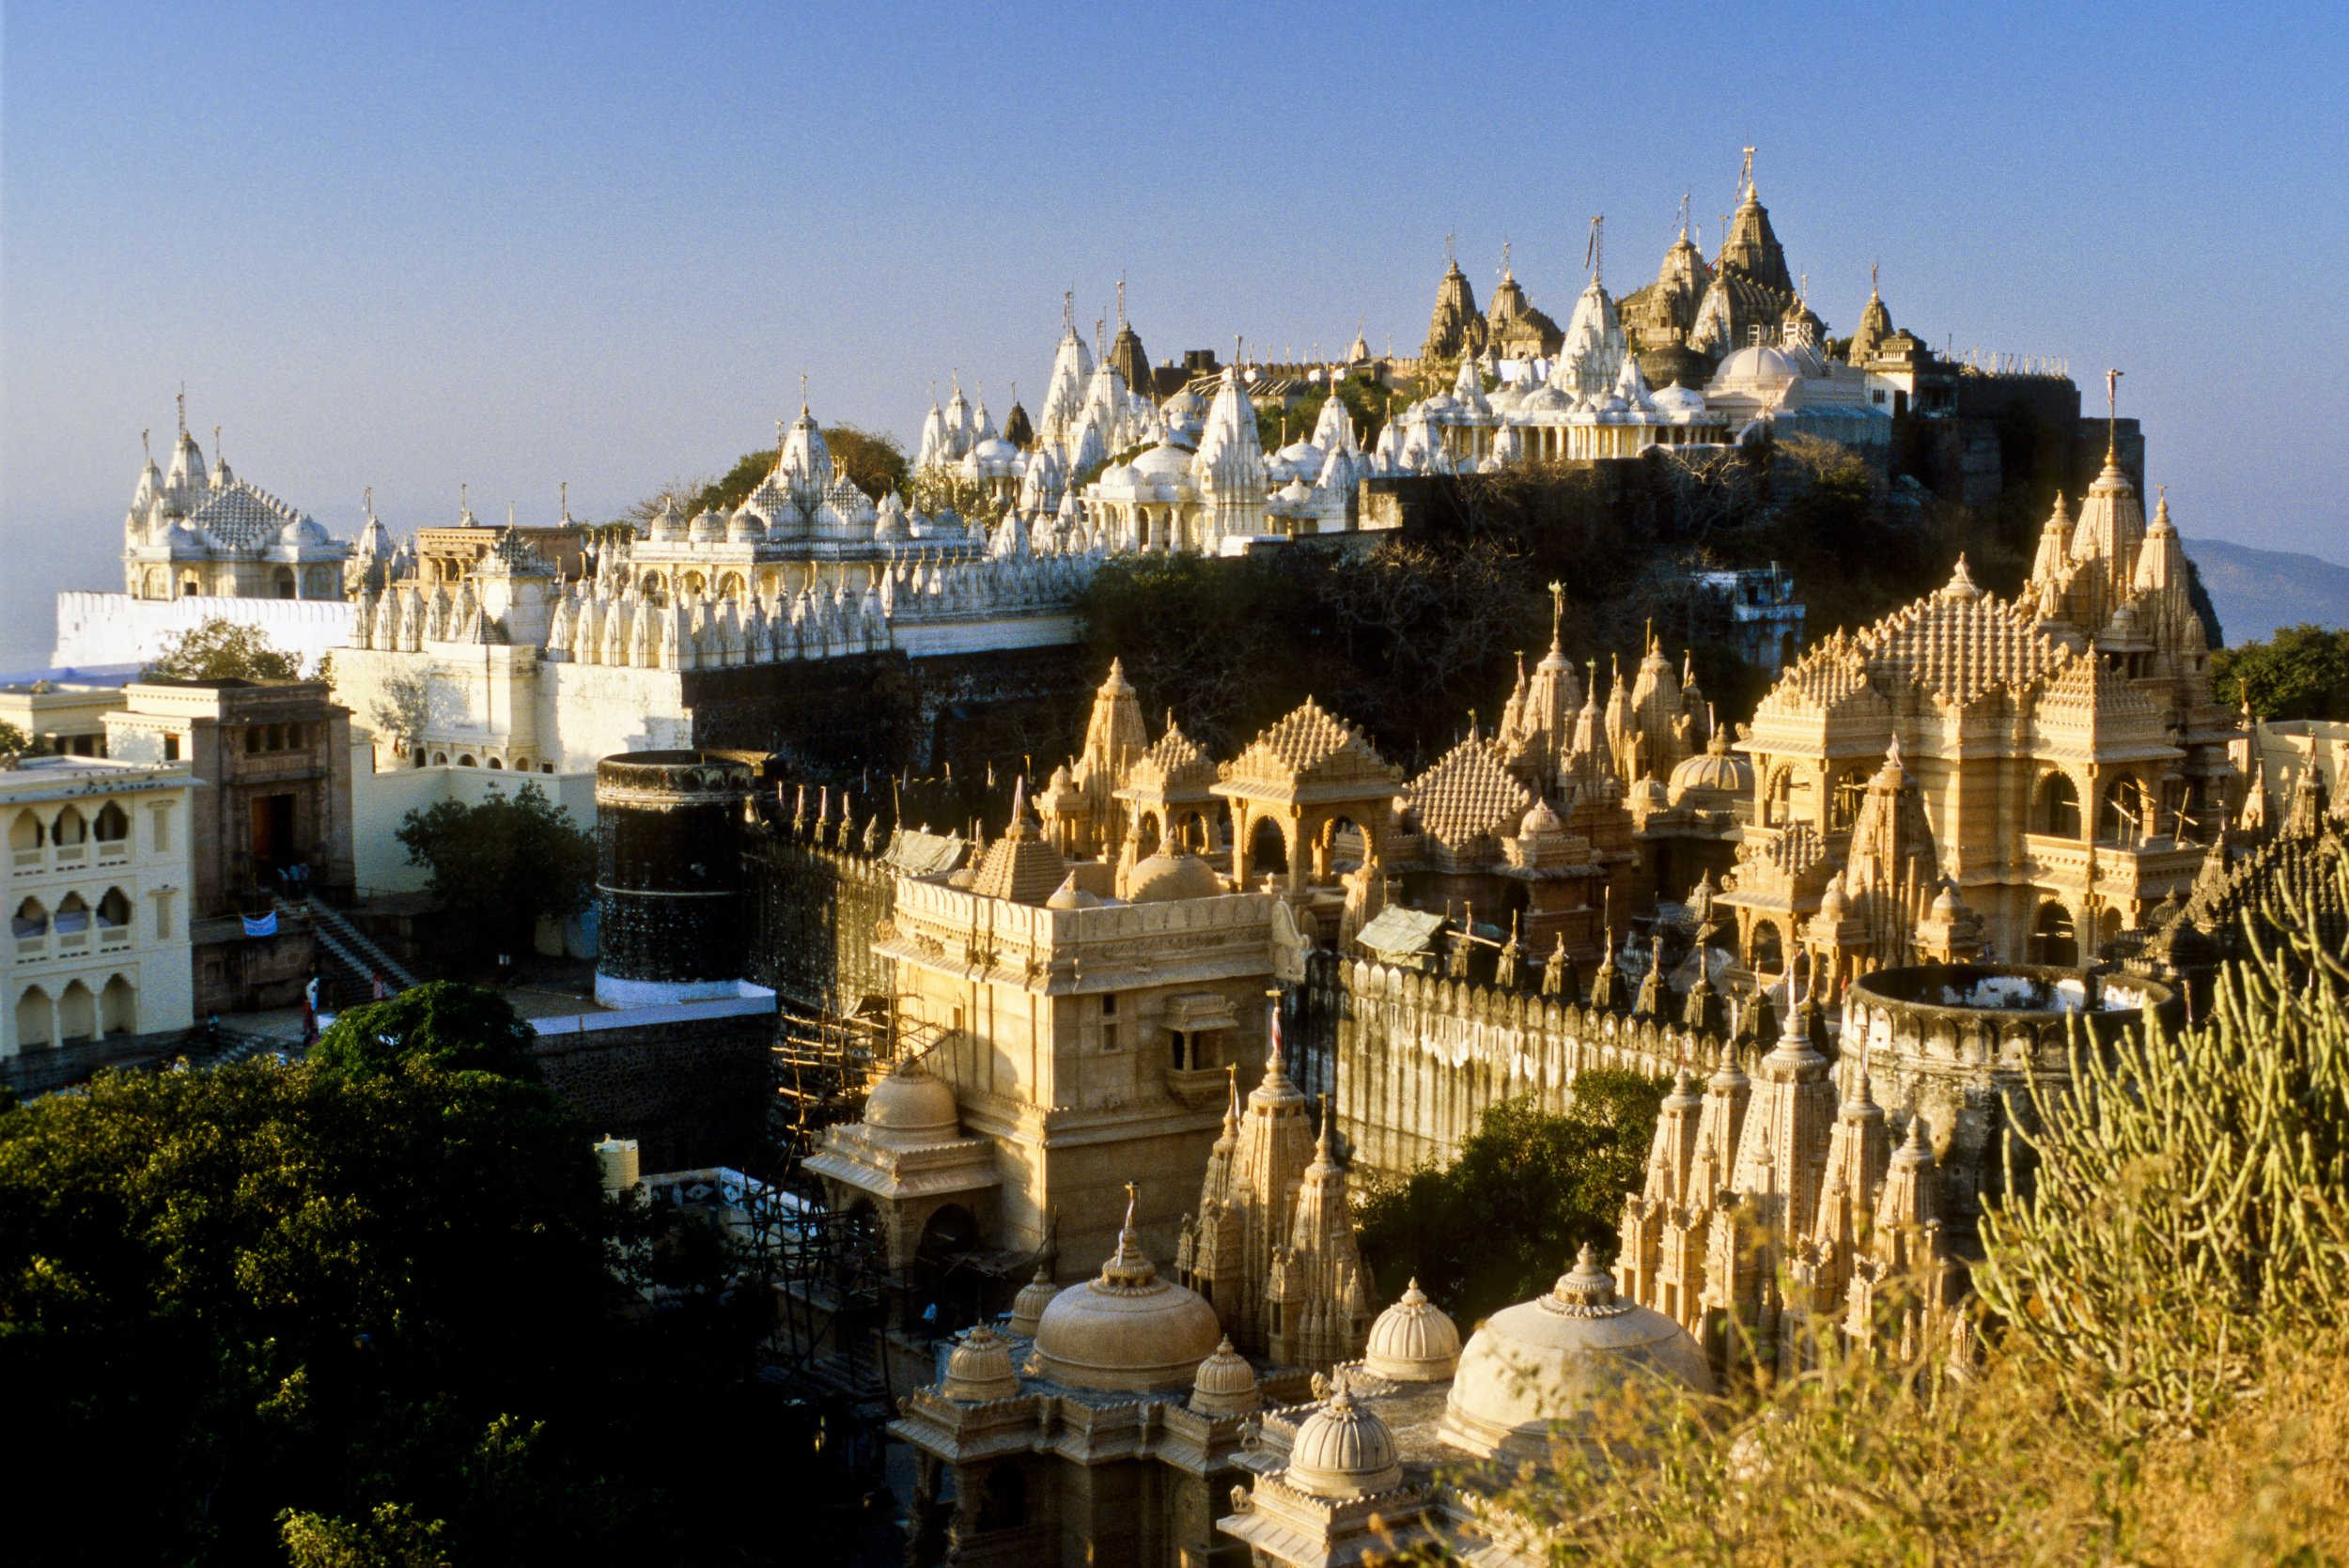 Palitana in India, a world's initial entirely vegetarian city